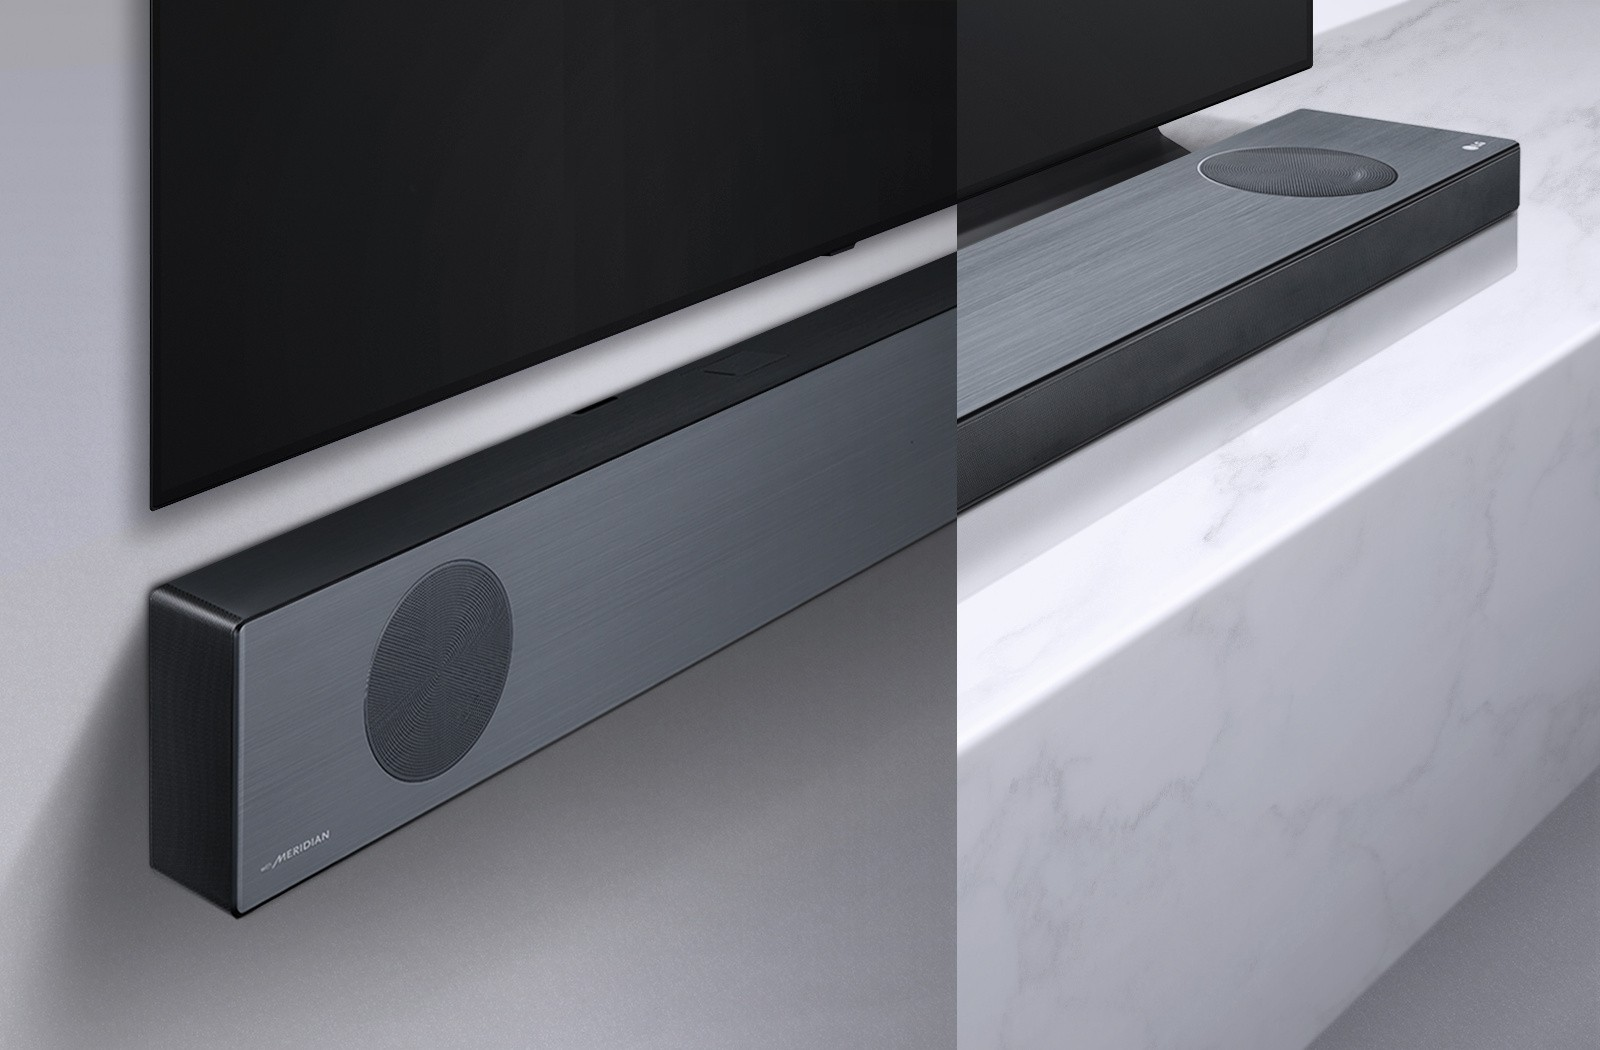 LG's tech-packed new soundbars will be on show at CES